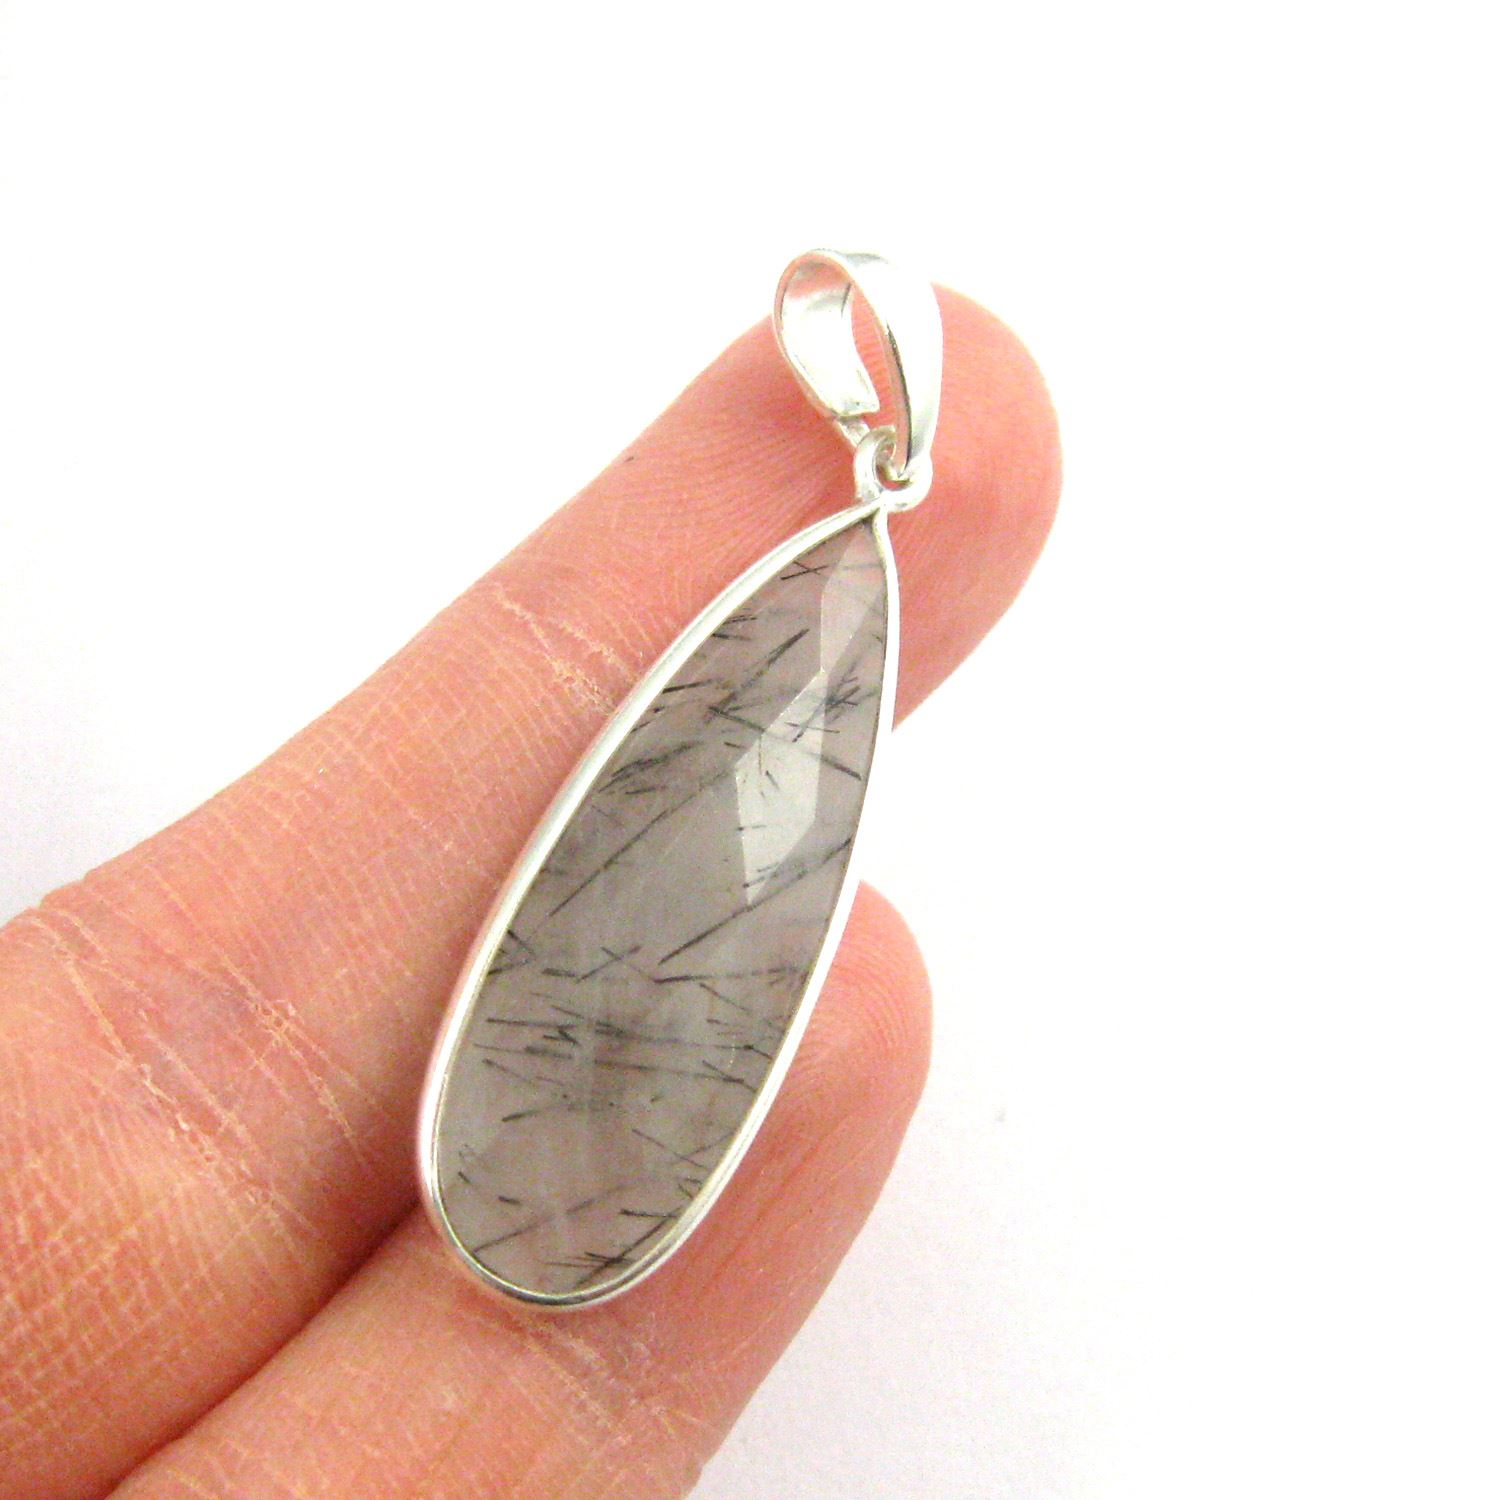 Bezel Gemstone Pendant with Bail - Sterling Silver Elongated Teardrpo Gem Pendant - Ready for Necklace - 40mm - Black Rutilated Quartz